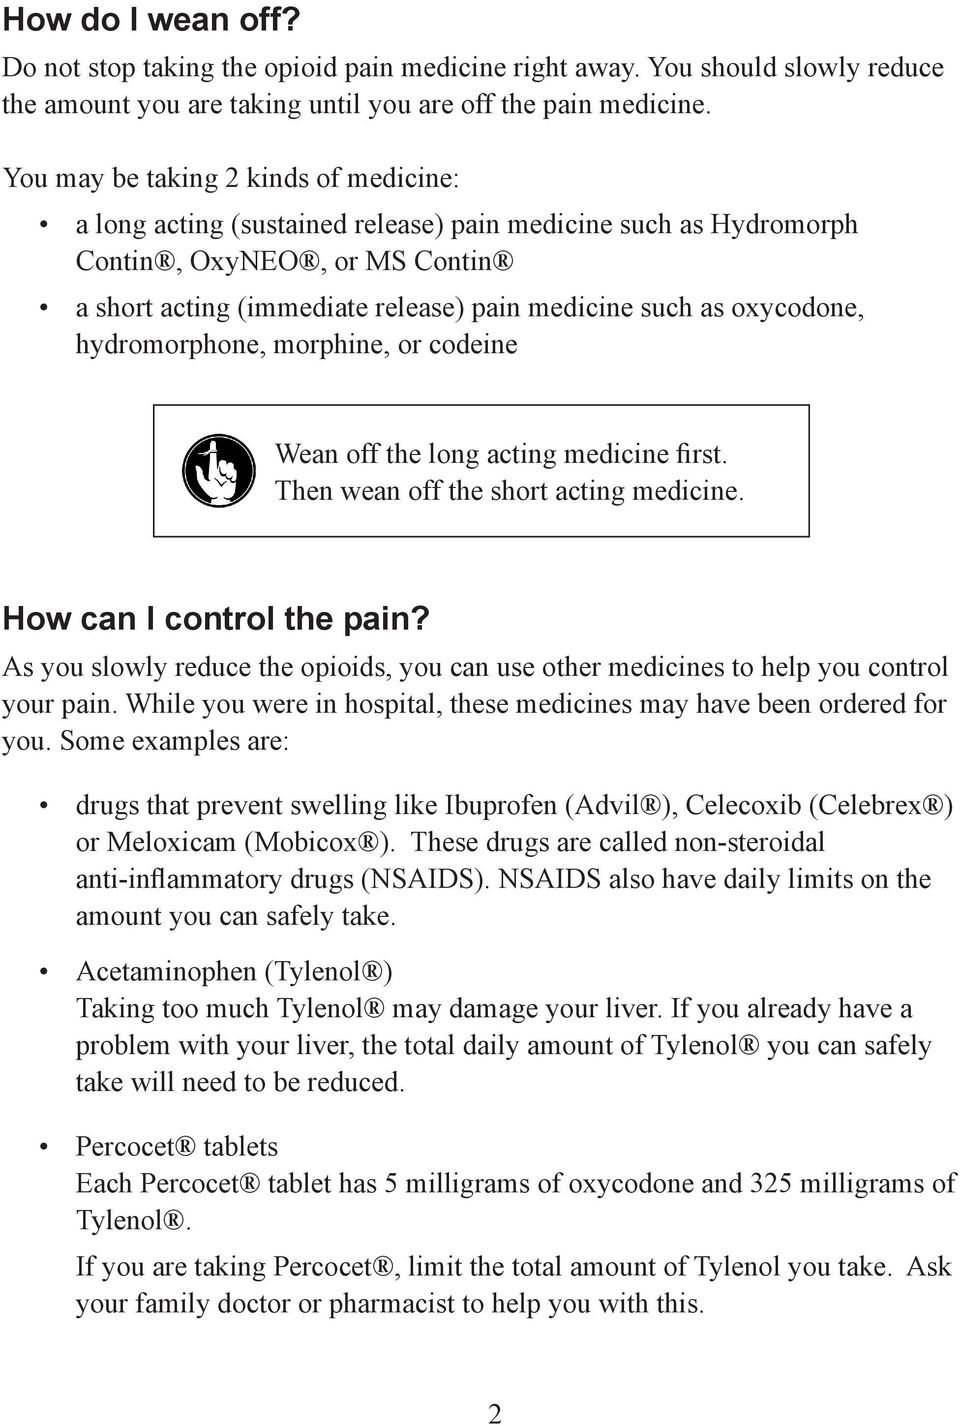 oxycodone, hydromorphone, morphine, or codeine Wean off the long acting medicine first. Then wean off the short acting medicine. How can I control the pain?